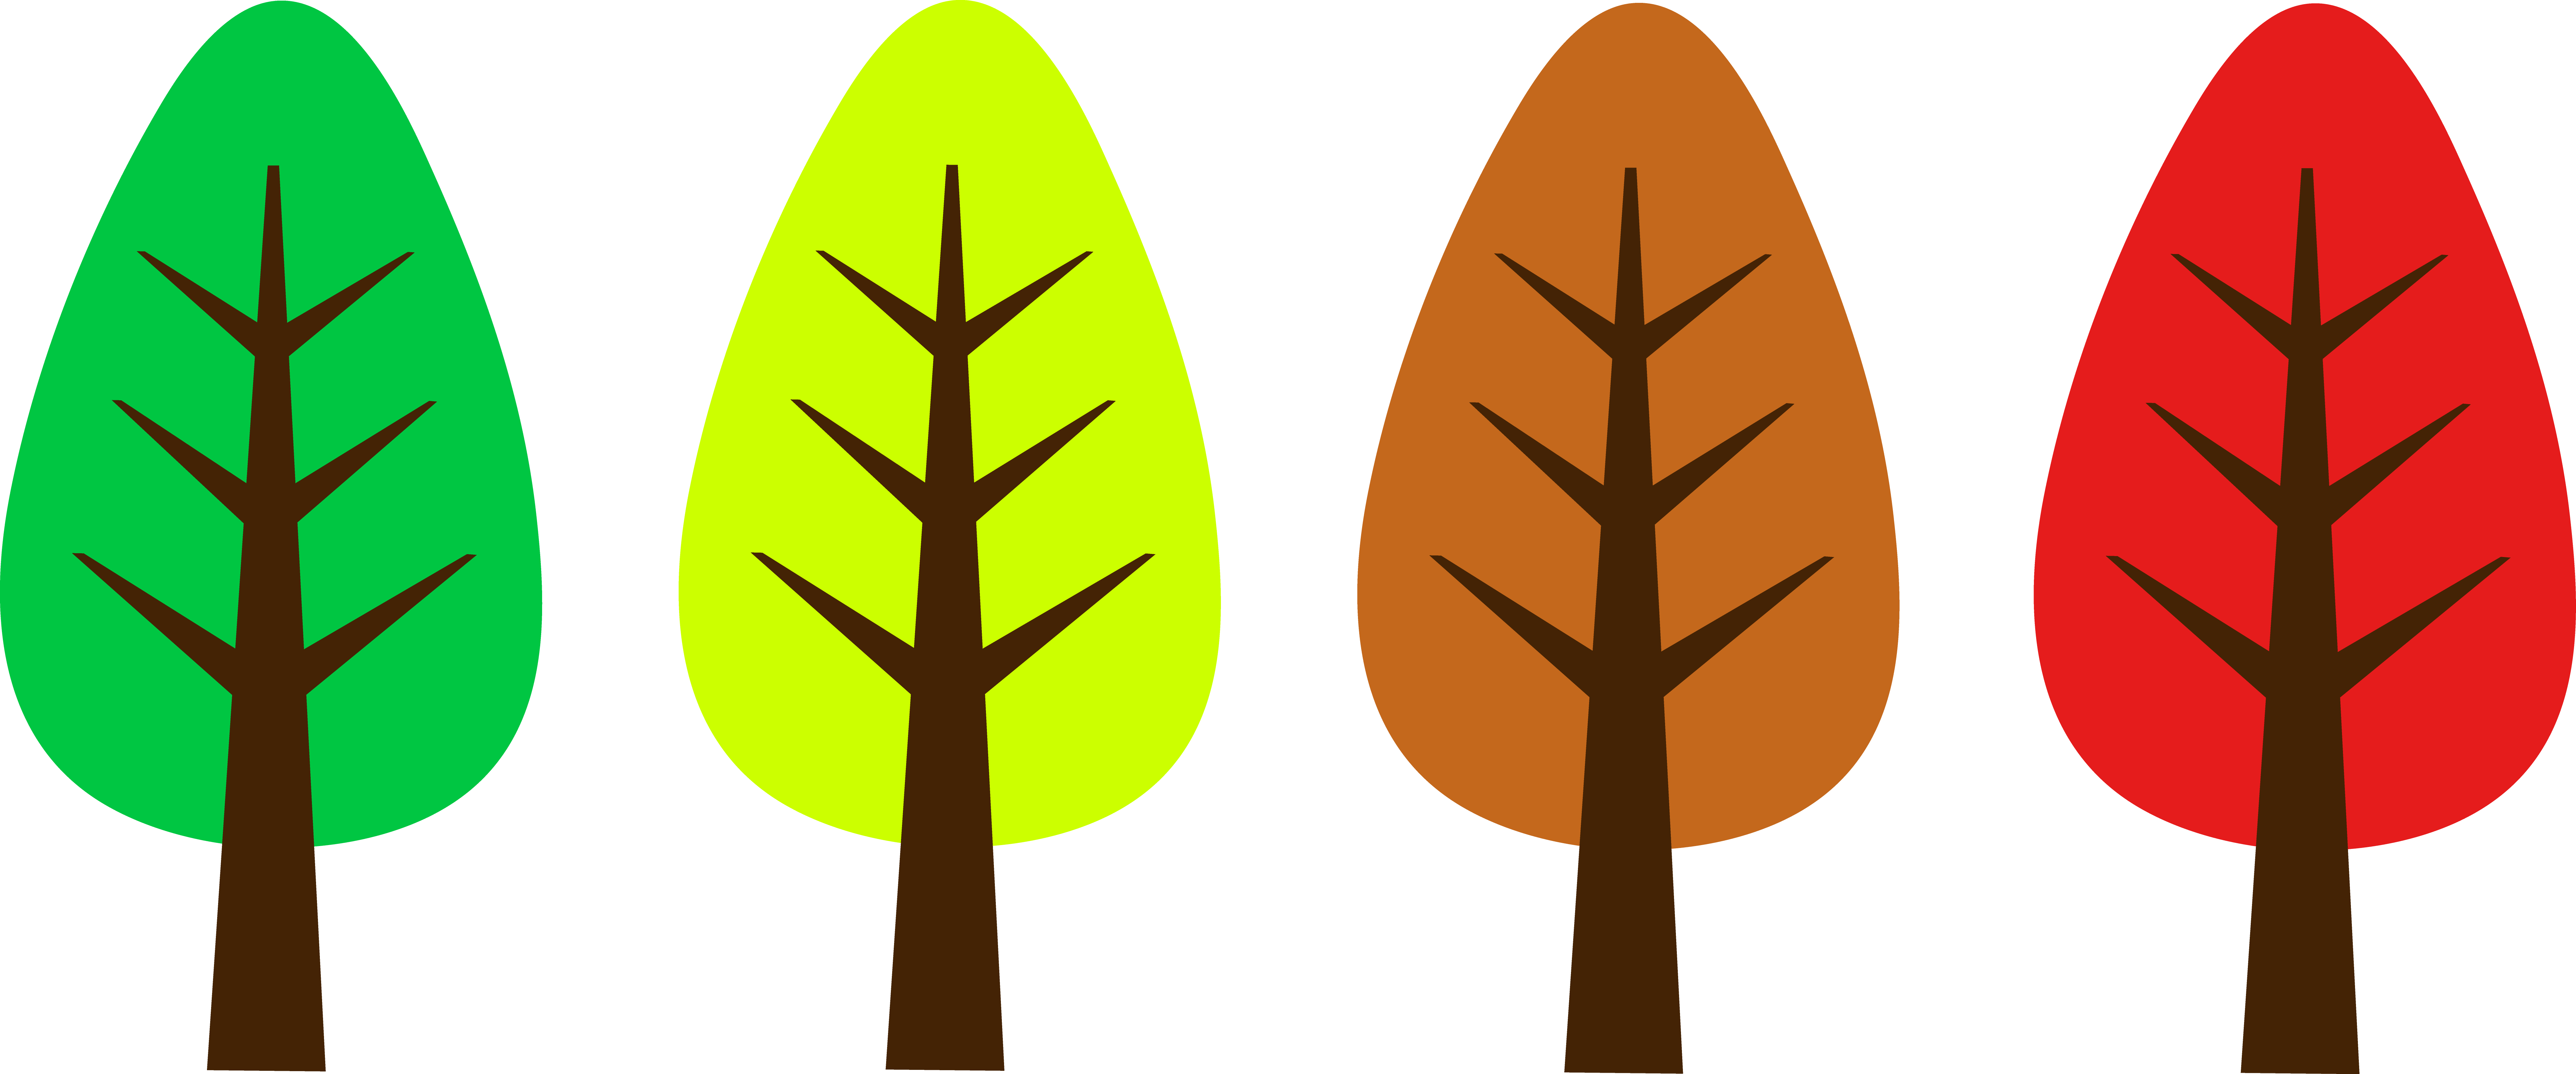 Oval clipart simple. Free cute trees cliparts